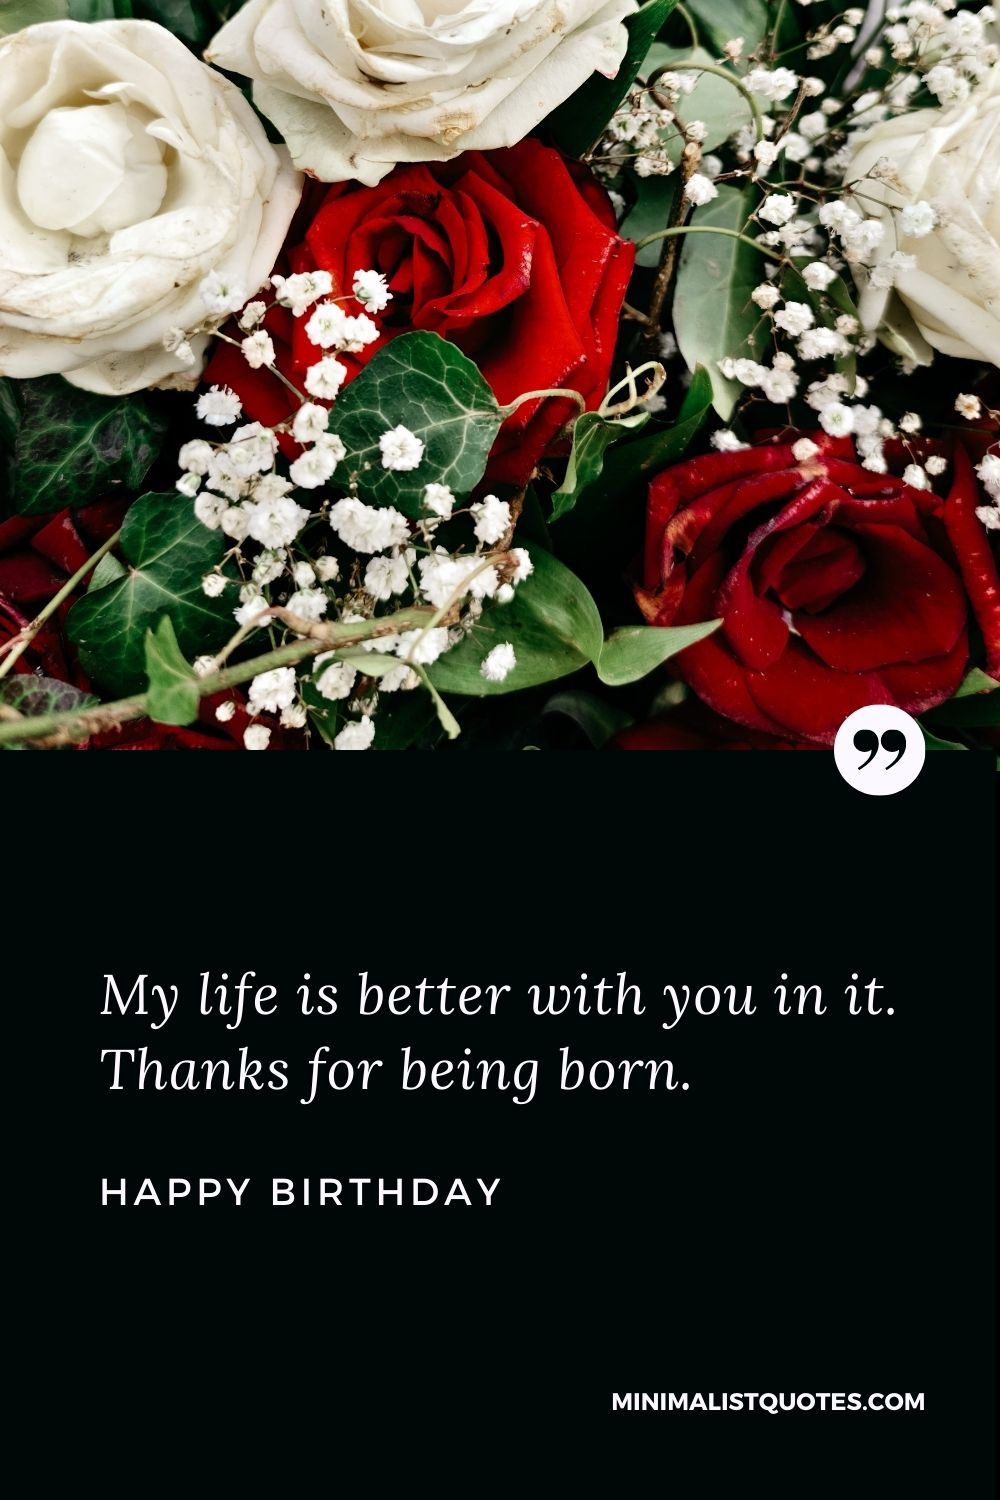 Happy Birthday Wishes - My life is better with you in it. Thanks for being born.